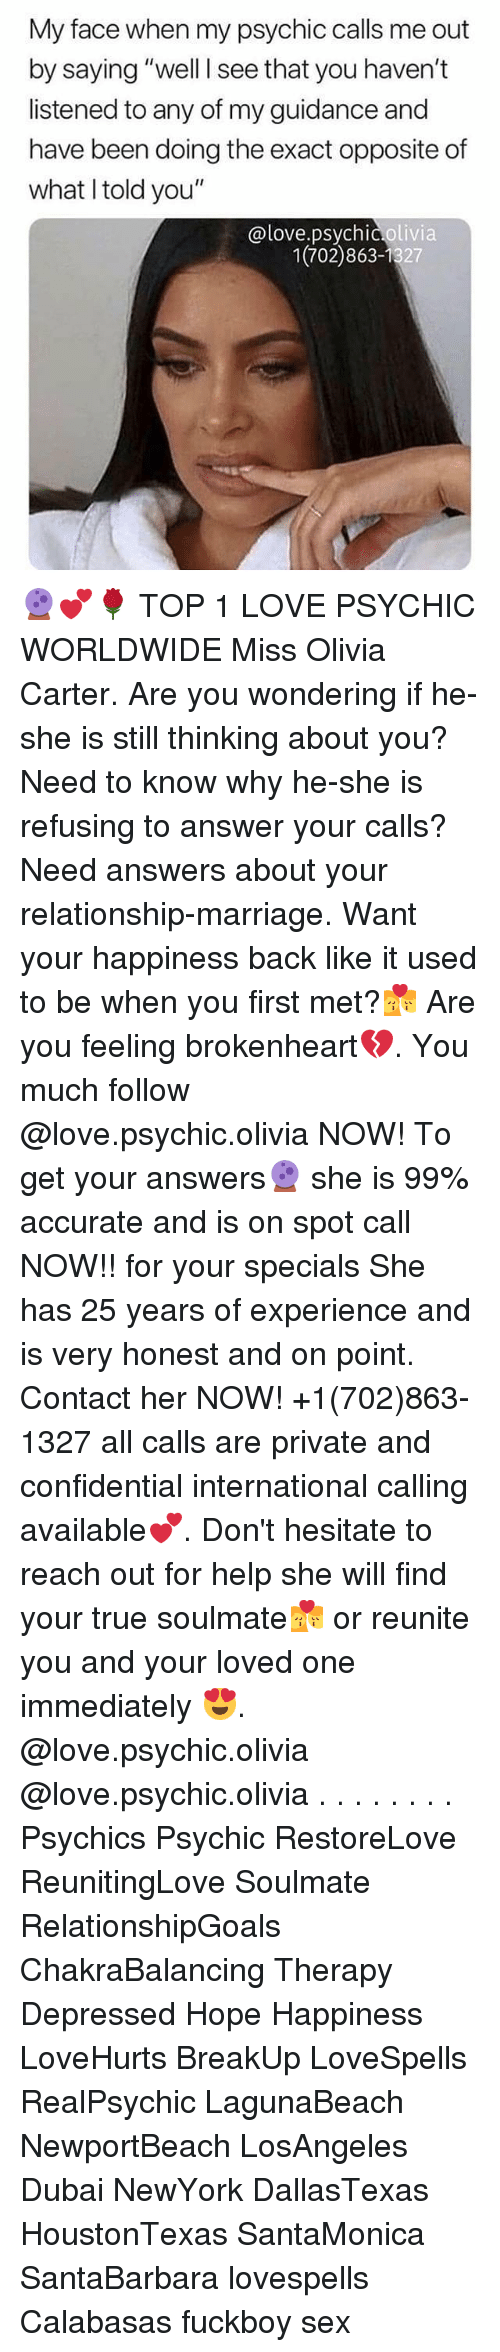 """brokenheart: My face when my psychic calls me out  by saying """"well I see that you haven't  listened to any of my guidance and  have been doing the exact opposite of  what Itold you""""  @love.psychic olivia  1(702)863-1327 🔮💕🌹 TOP 1 LOVE PSYCHIC WORLDWIDE Miss Olivia Carter. Are you wondering if he-she is still thinking about you? Need to know why he-she is refusing to answer your calls? Need answers about your relationship-marriage. Want your happiness back like it used to be when you first met?💏 Are you feeling brokenheart💔. You much follow @love.psychic.olivia NOW! To get your answers🔮 she is 99% accurate and is on spot call NOW!! for your specials She has 25 years of experience and is very honest and on point. Contact her NOW! +1(702)863-1327 all calls are private and confidential international calling available💕. Don't hesitate to reach out for help she will find your true soulmate💏 or reunite you and your loved one immediately 😍. @love.psychic.olivia @love.psychic.olivia . . . . . . . . Psychics Psychic RestoreLove ReunitingLove Soulmate RelationshipGoals ChakraBalancing Therapy Depressed Hope Happiness LoveHurts BreakUp LoveSpells RealPsychic LagunaBeach NewportBeach LosAngeles Dubai NewYork DallasTexas HoustonTexas SantaMonica SantaBarbara lovespells Calabasas fuckboy sex"""